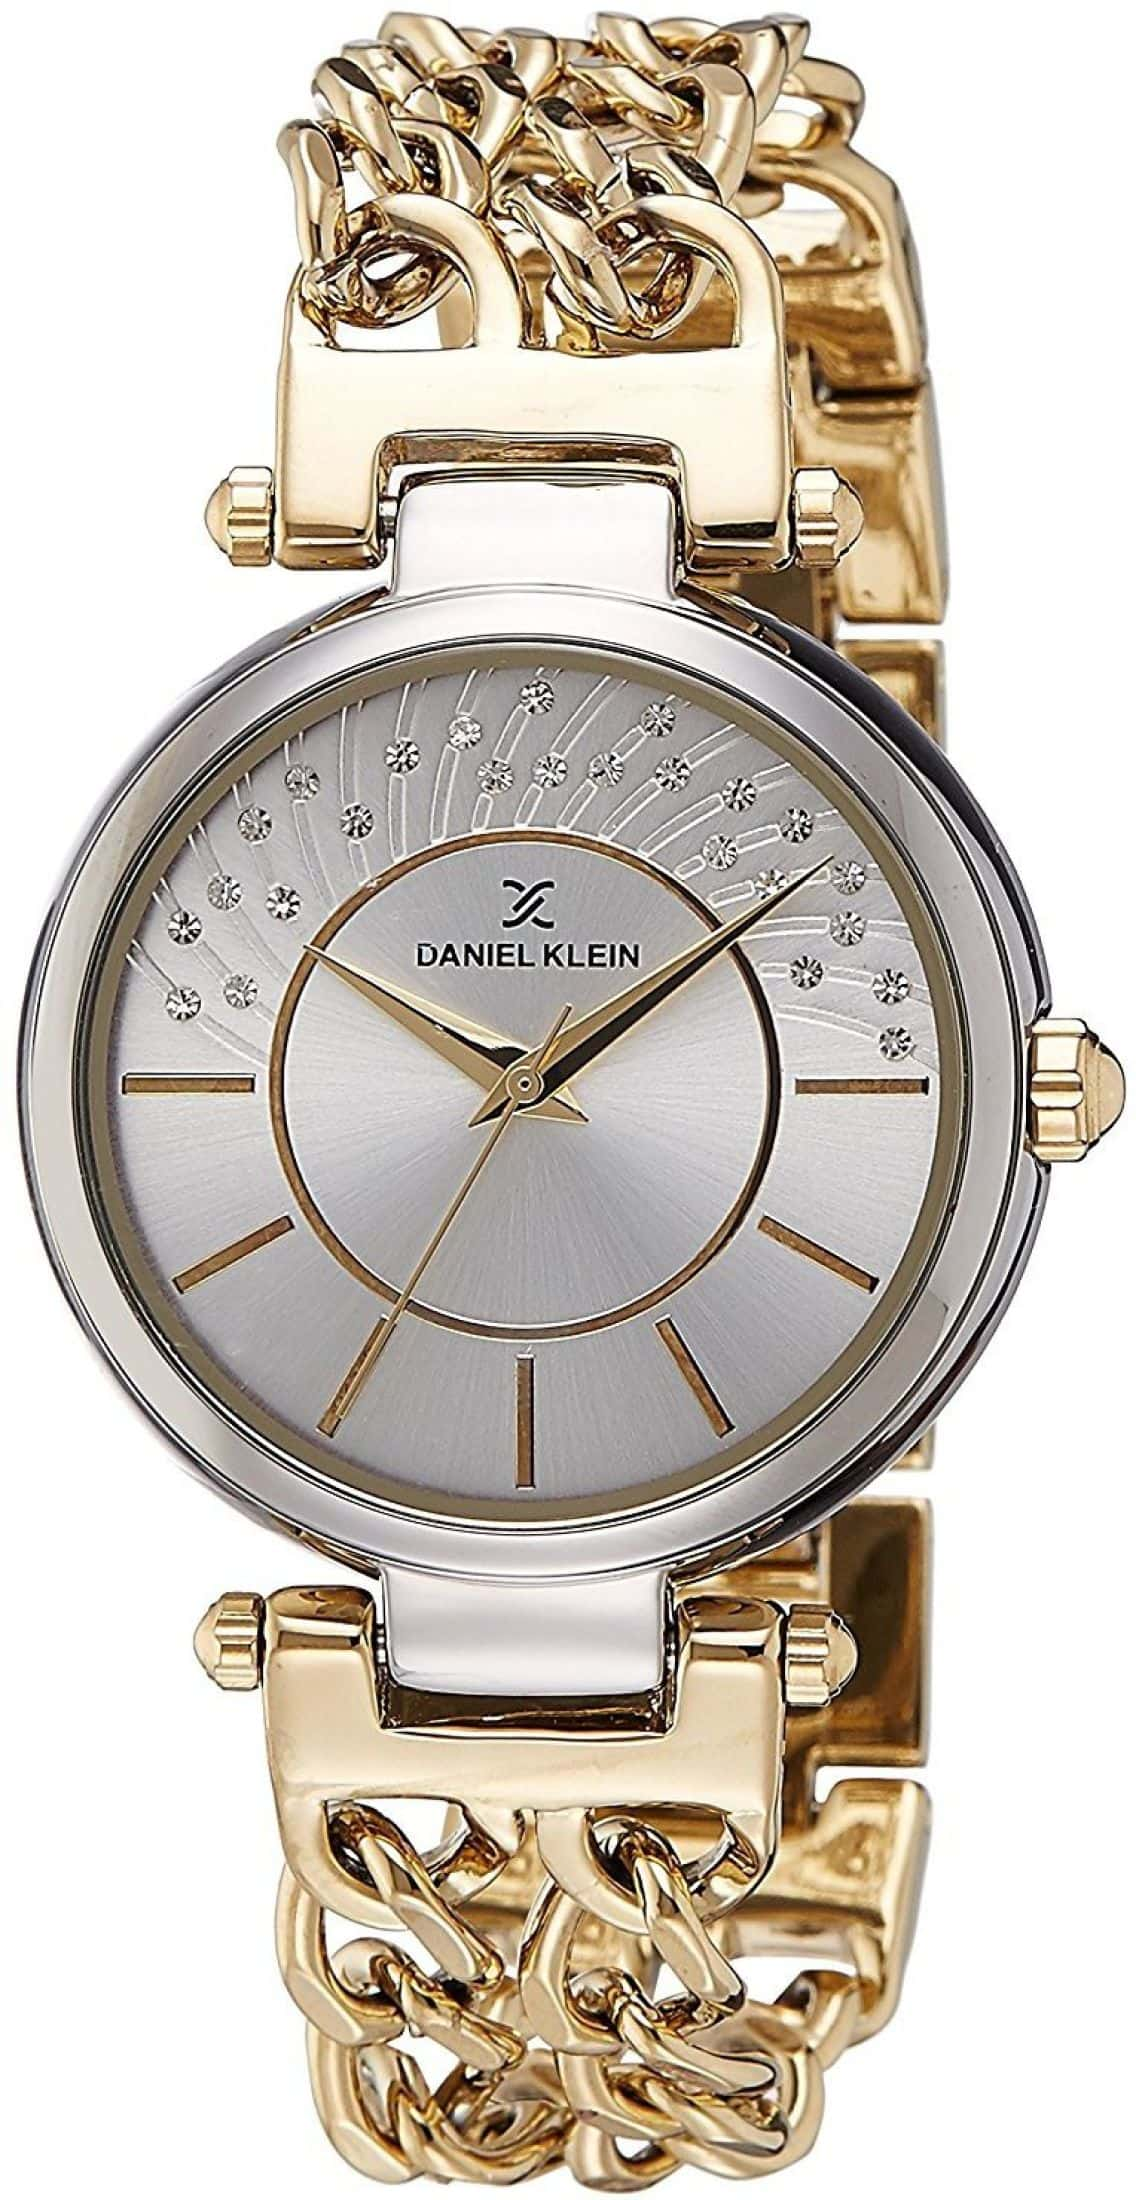 Deniel Klein women's watches at flat 70% off